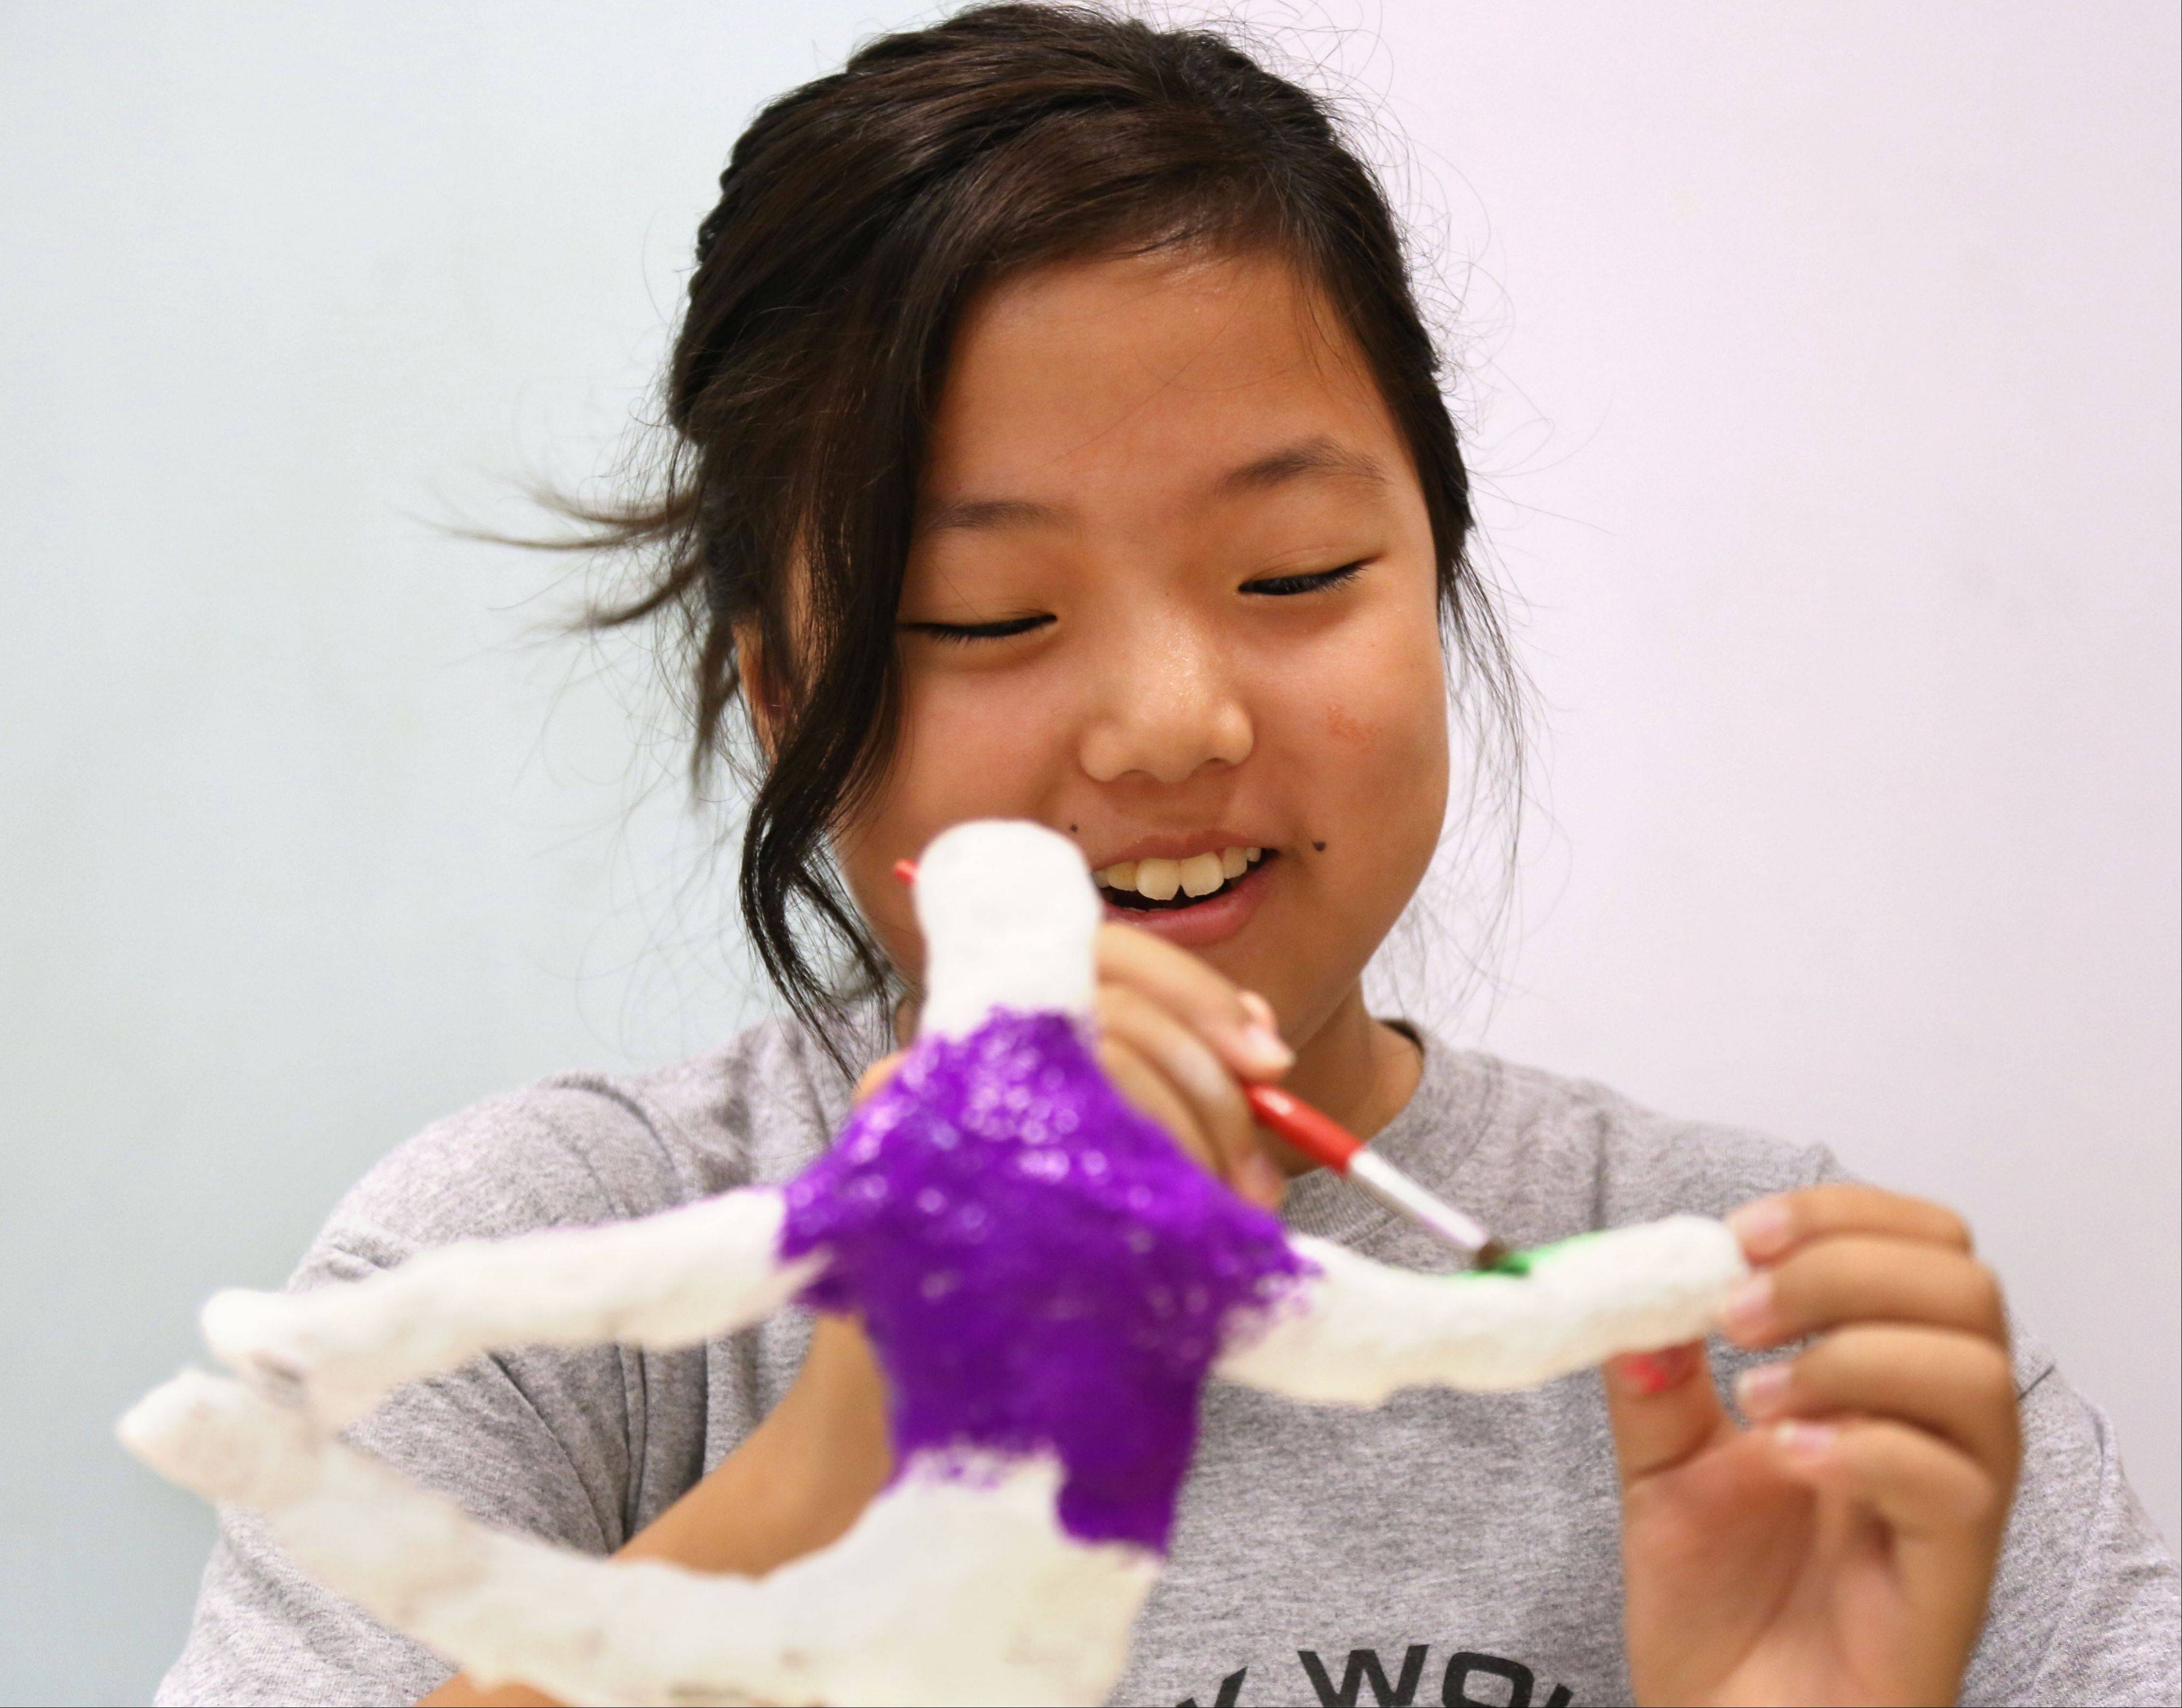 Eleven-year-old Youjin Kim paints a sculpture she made at Summer Academy, one of the enrichment classes offered at Frederick School.